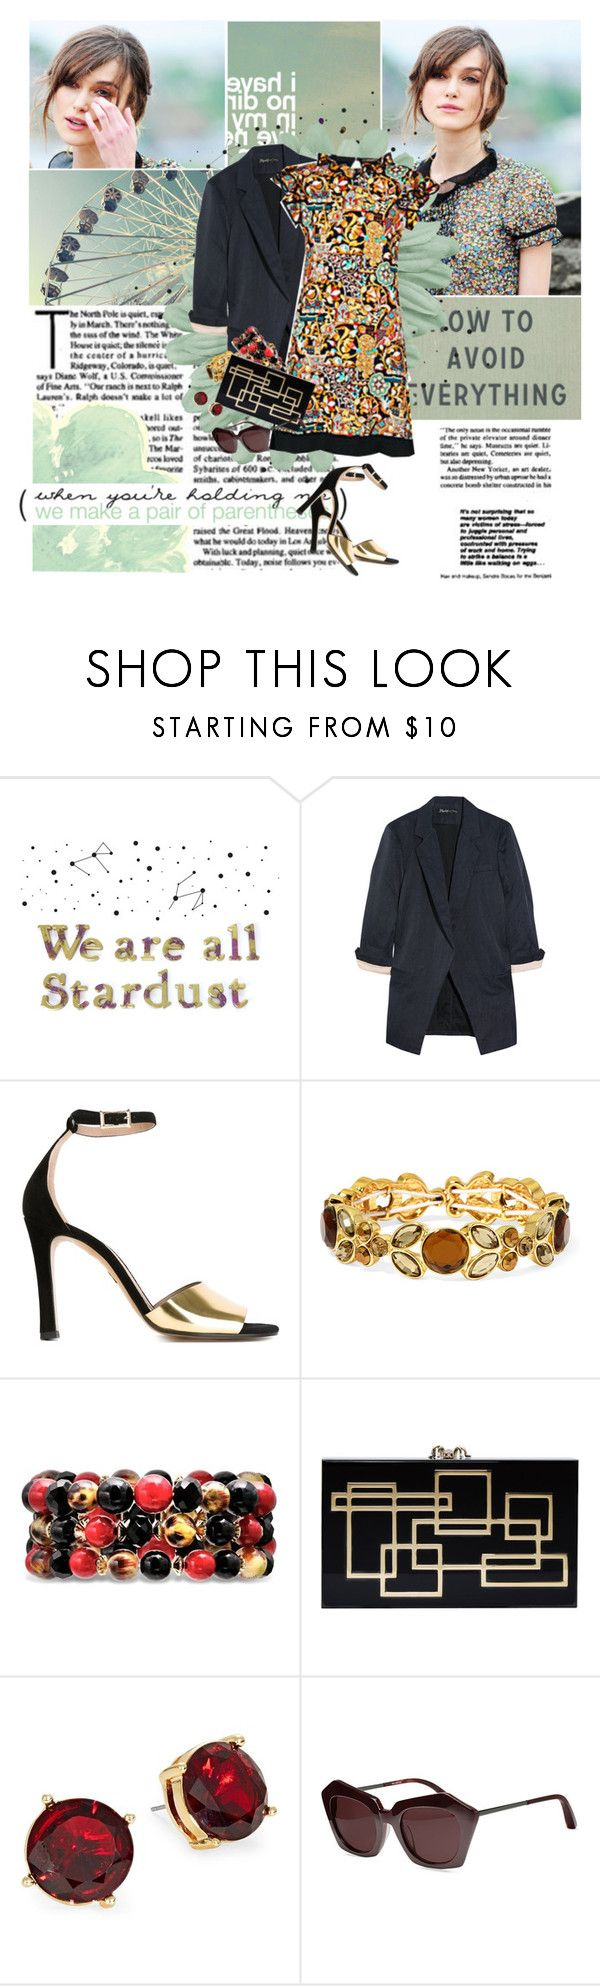 """""""Do something crazy with me"""" by winfreda ❤ liked on Polyvore featuring WALL, Elizabeth and James, Louis Vuitton, Chloé, Liz Claiborne, Charlotte Olympia and Lauren Ralph Lauren"""